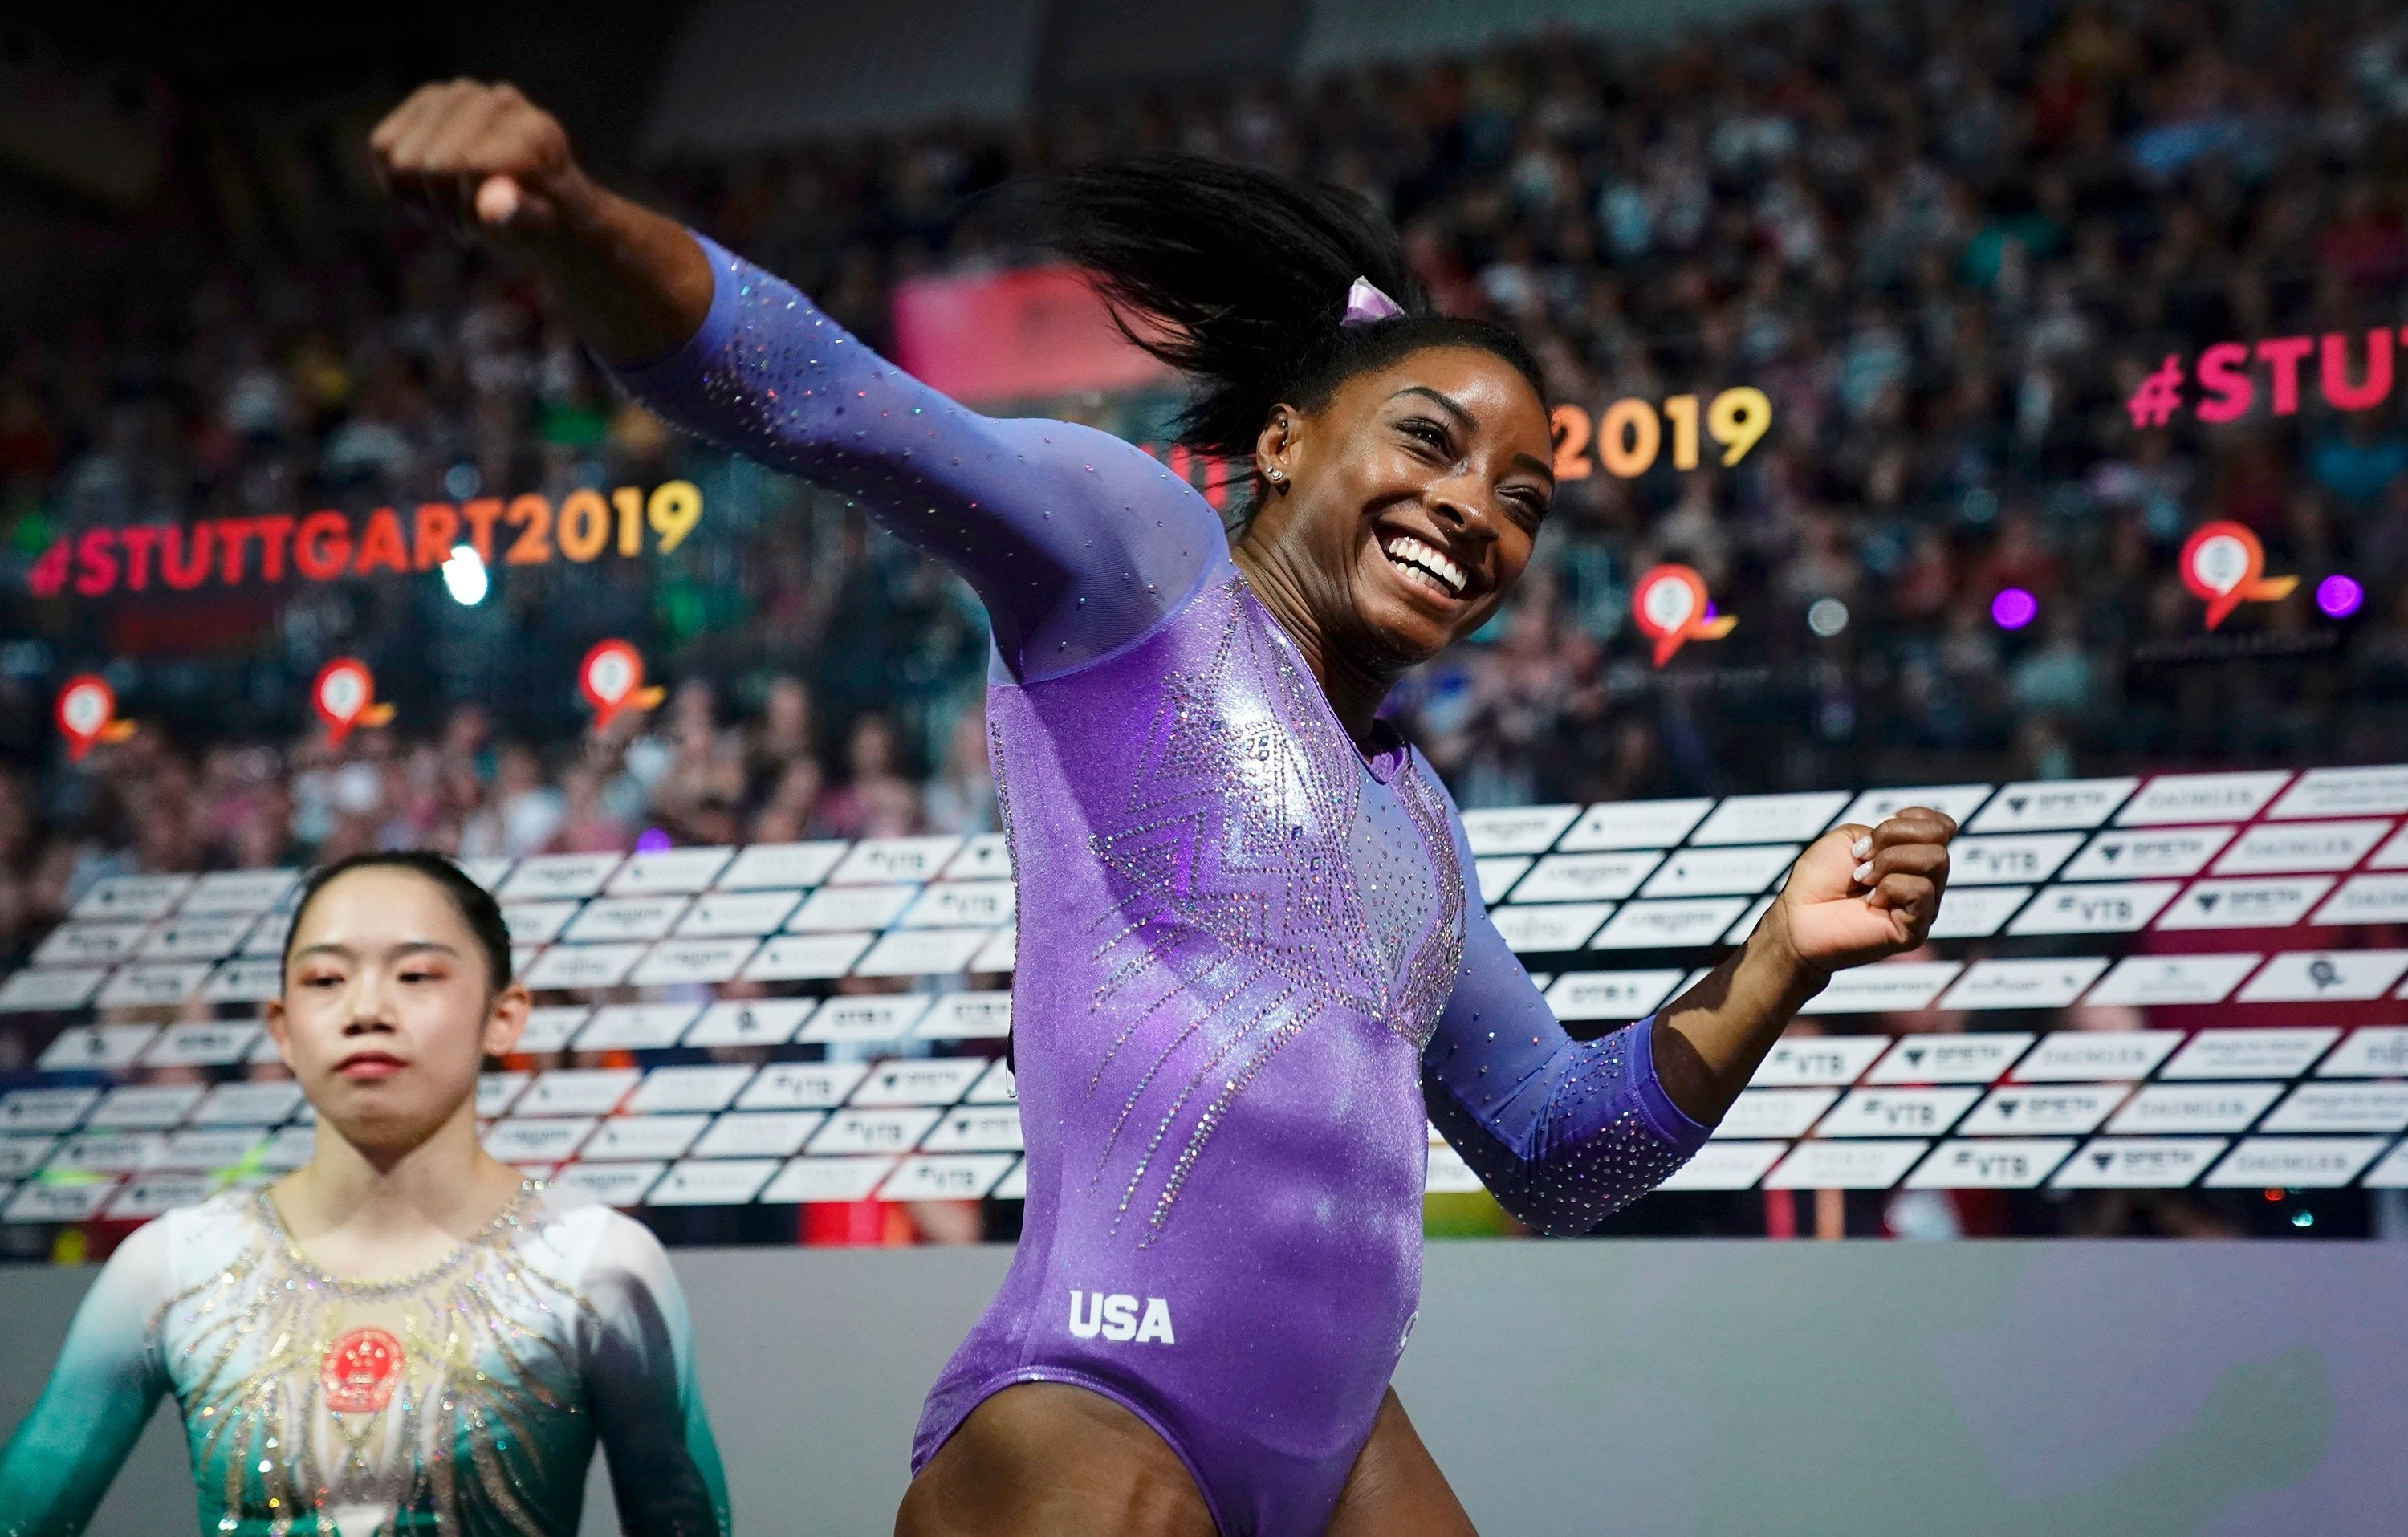 Simone Biles sets record for most world gymnastics championship medals